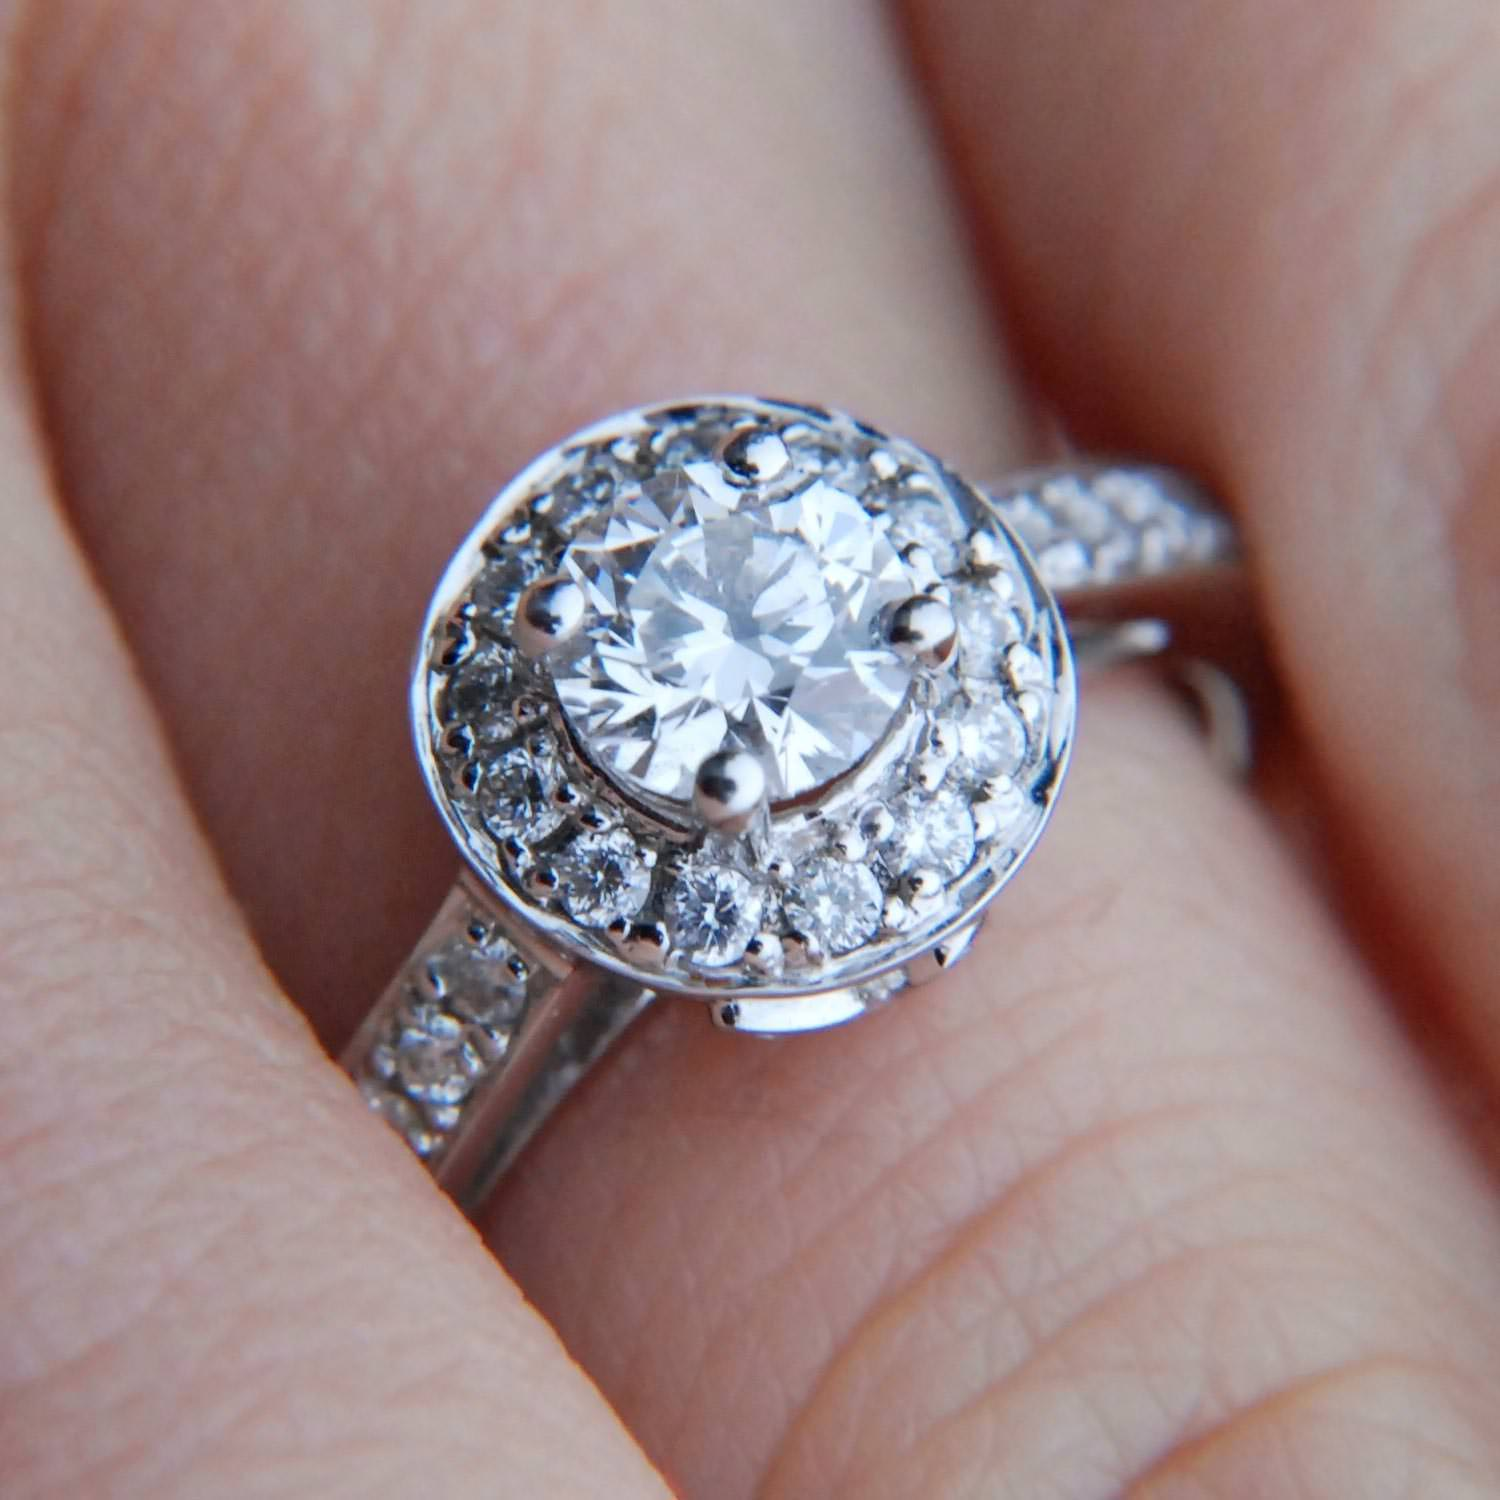 bad rings in wedding lieu finger ring trending diamond are piercings of allure piercing story engagement dermal